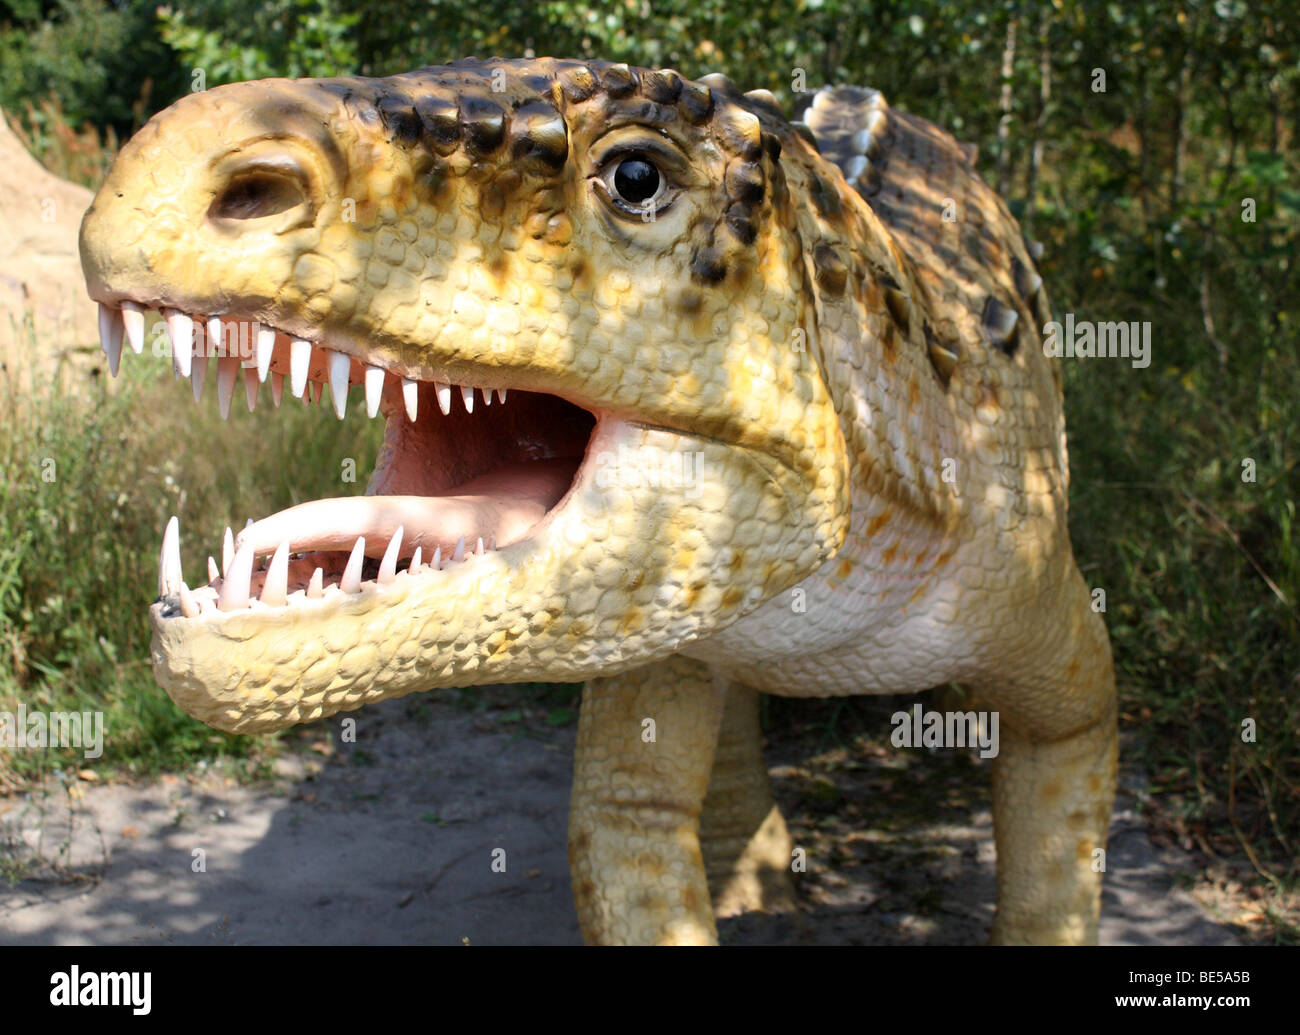 Ornithosuchus (meaning 'bird crocodile') is an extinct genus of crurotarsan from the Late Triassic of Scotland. - Stock Image